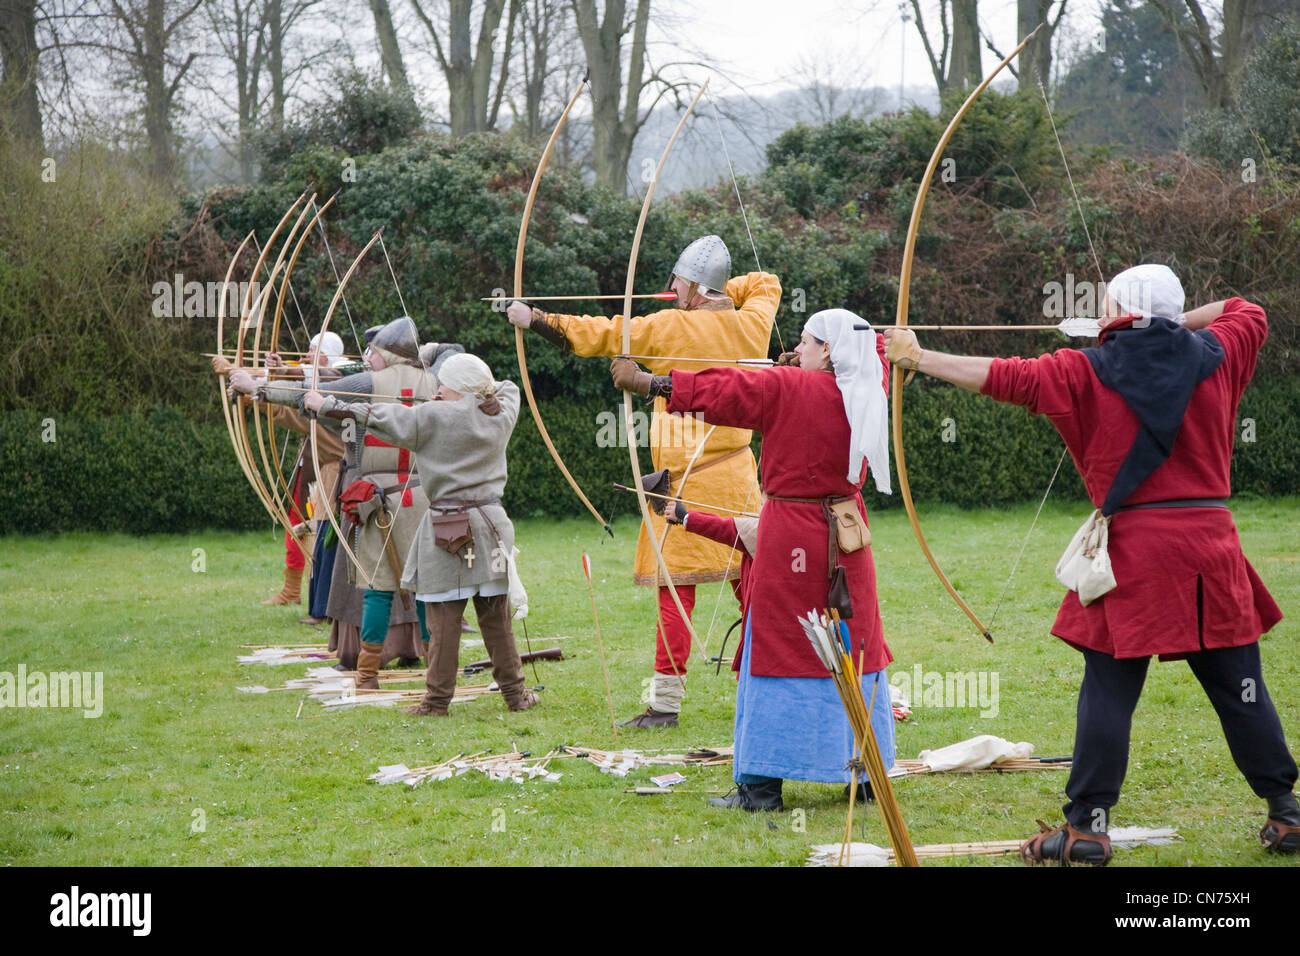 Archers in a Historic battle reenactment - Stock Image